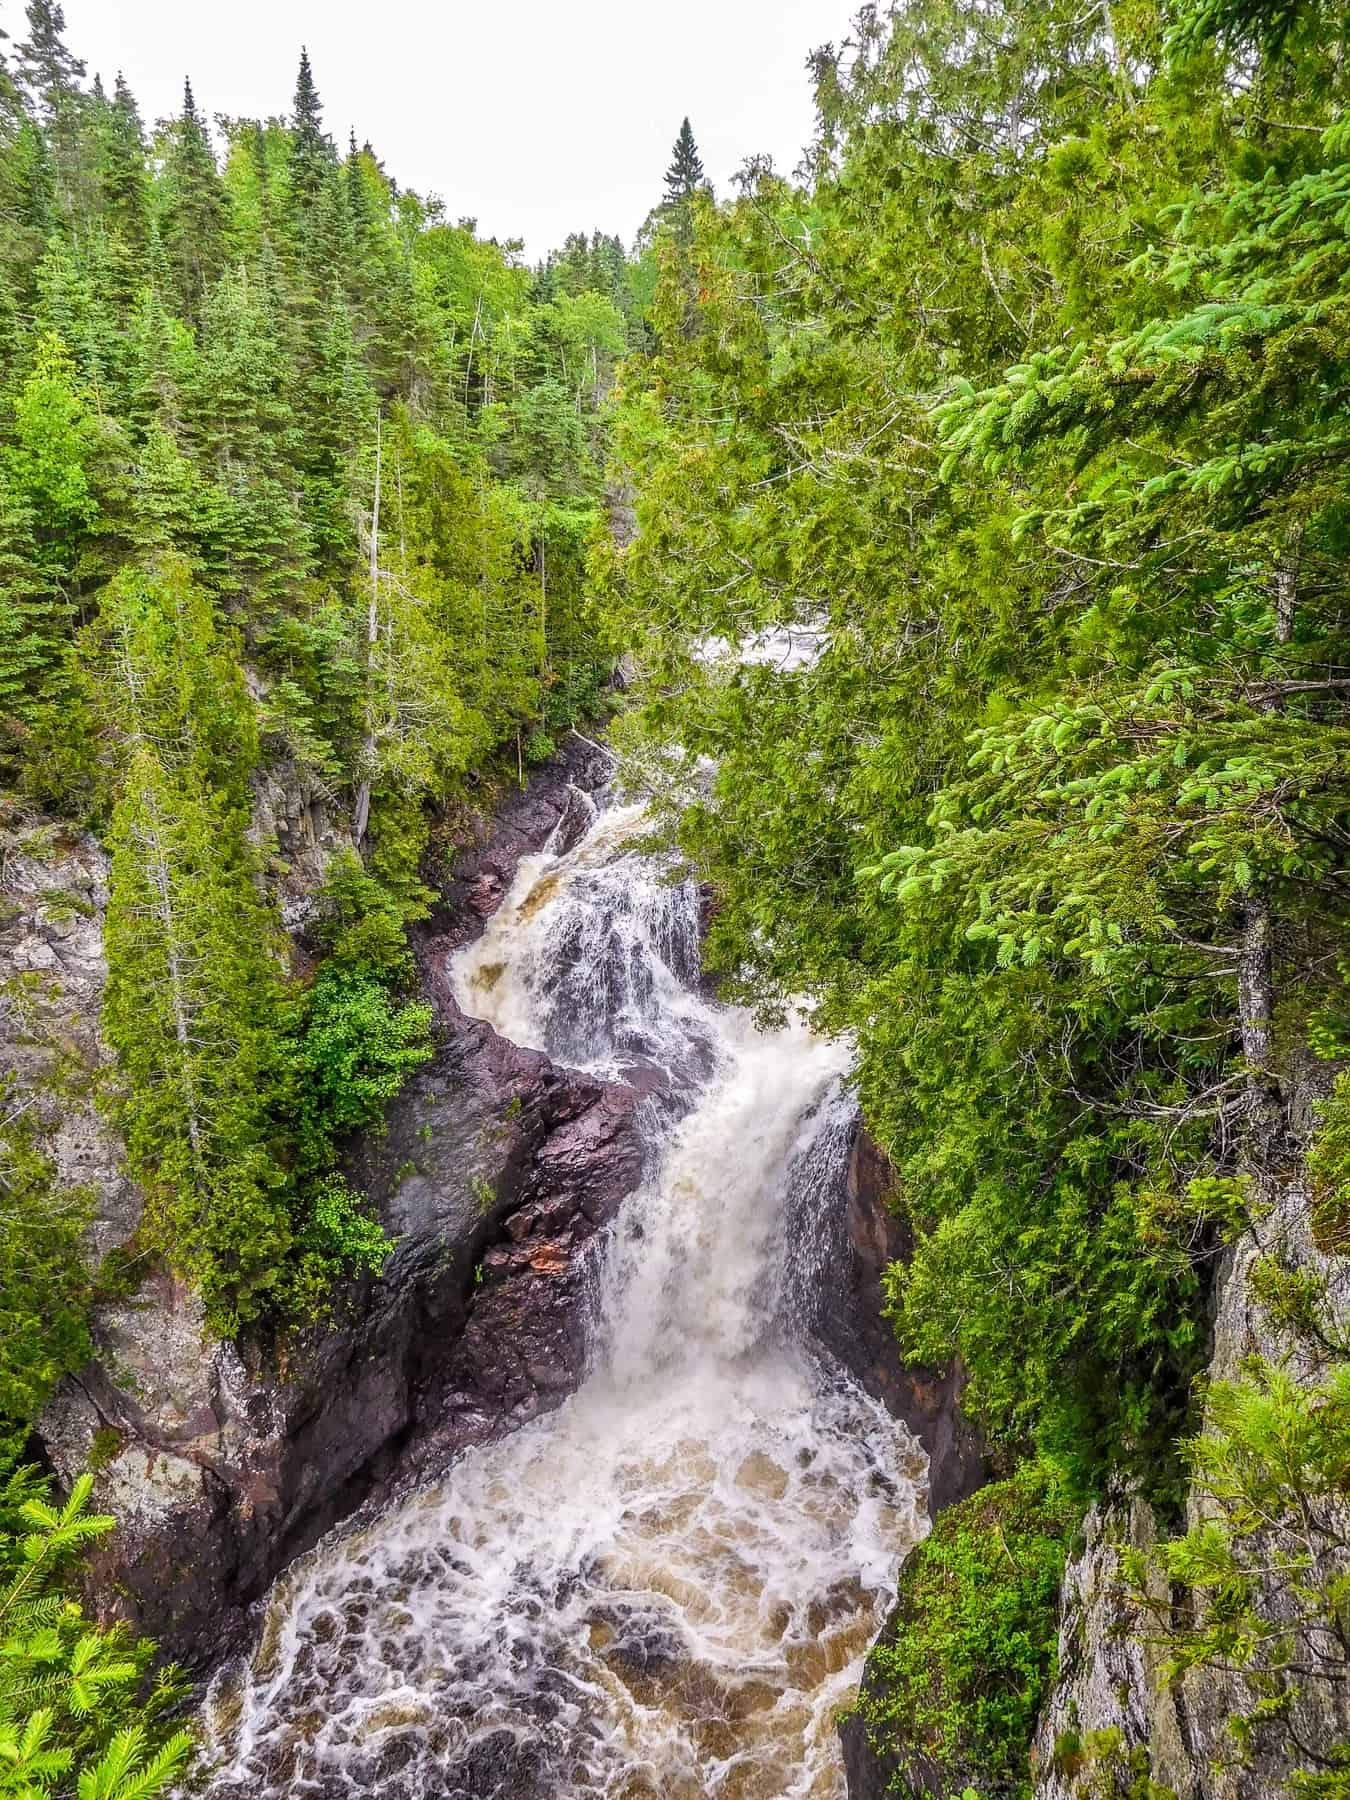 The Devil's Kettle Waterfall During Normal Water Flow